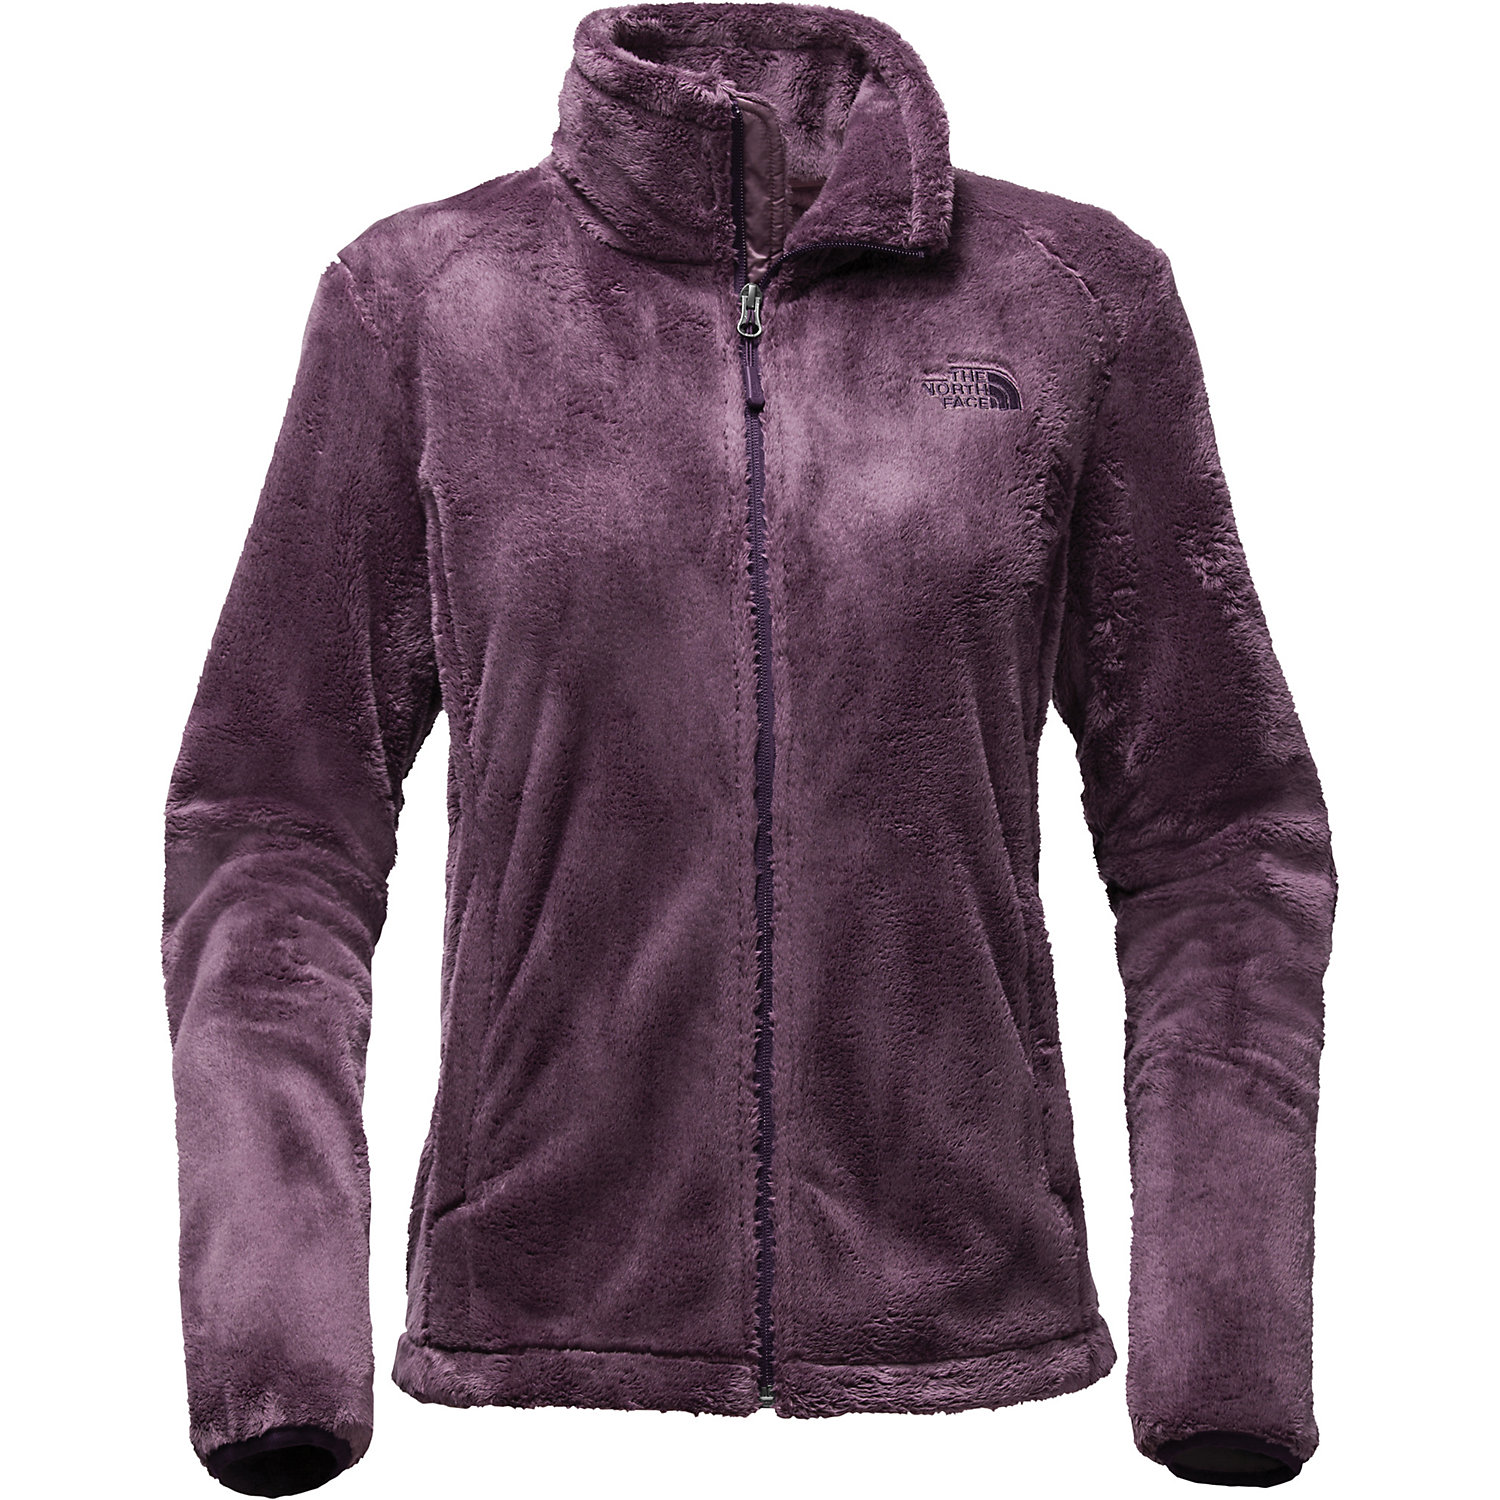 01f058e7d The North Face Women's Osito 2 Jacket